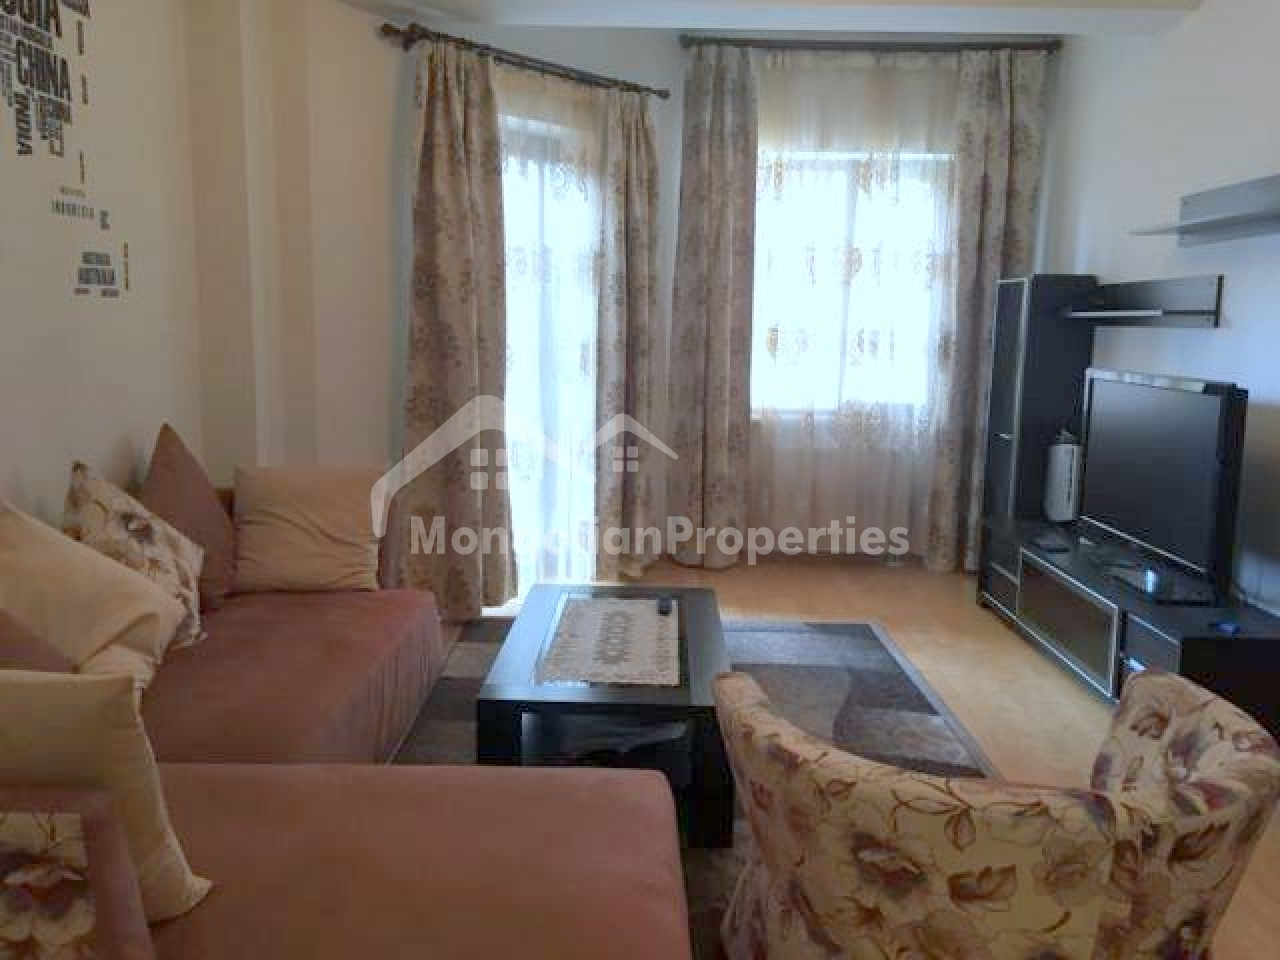 Cozy 1 bedroom apartment is for rent in Regency Residence